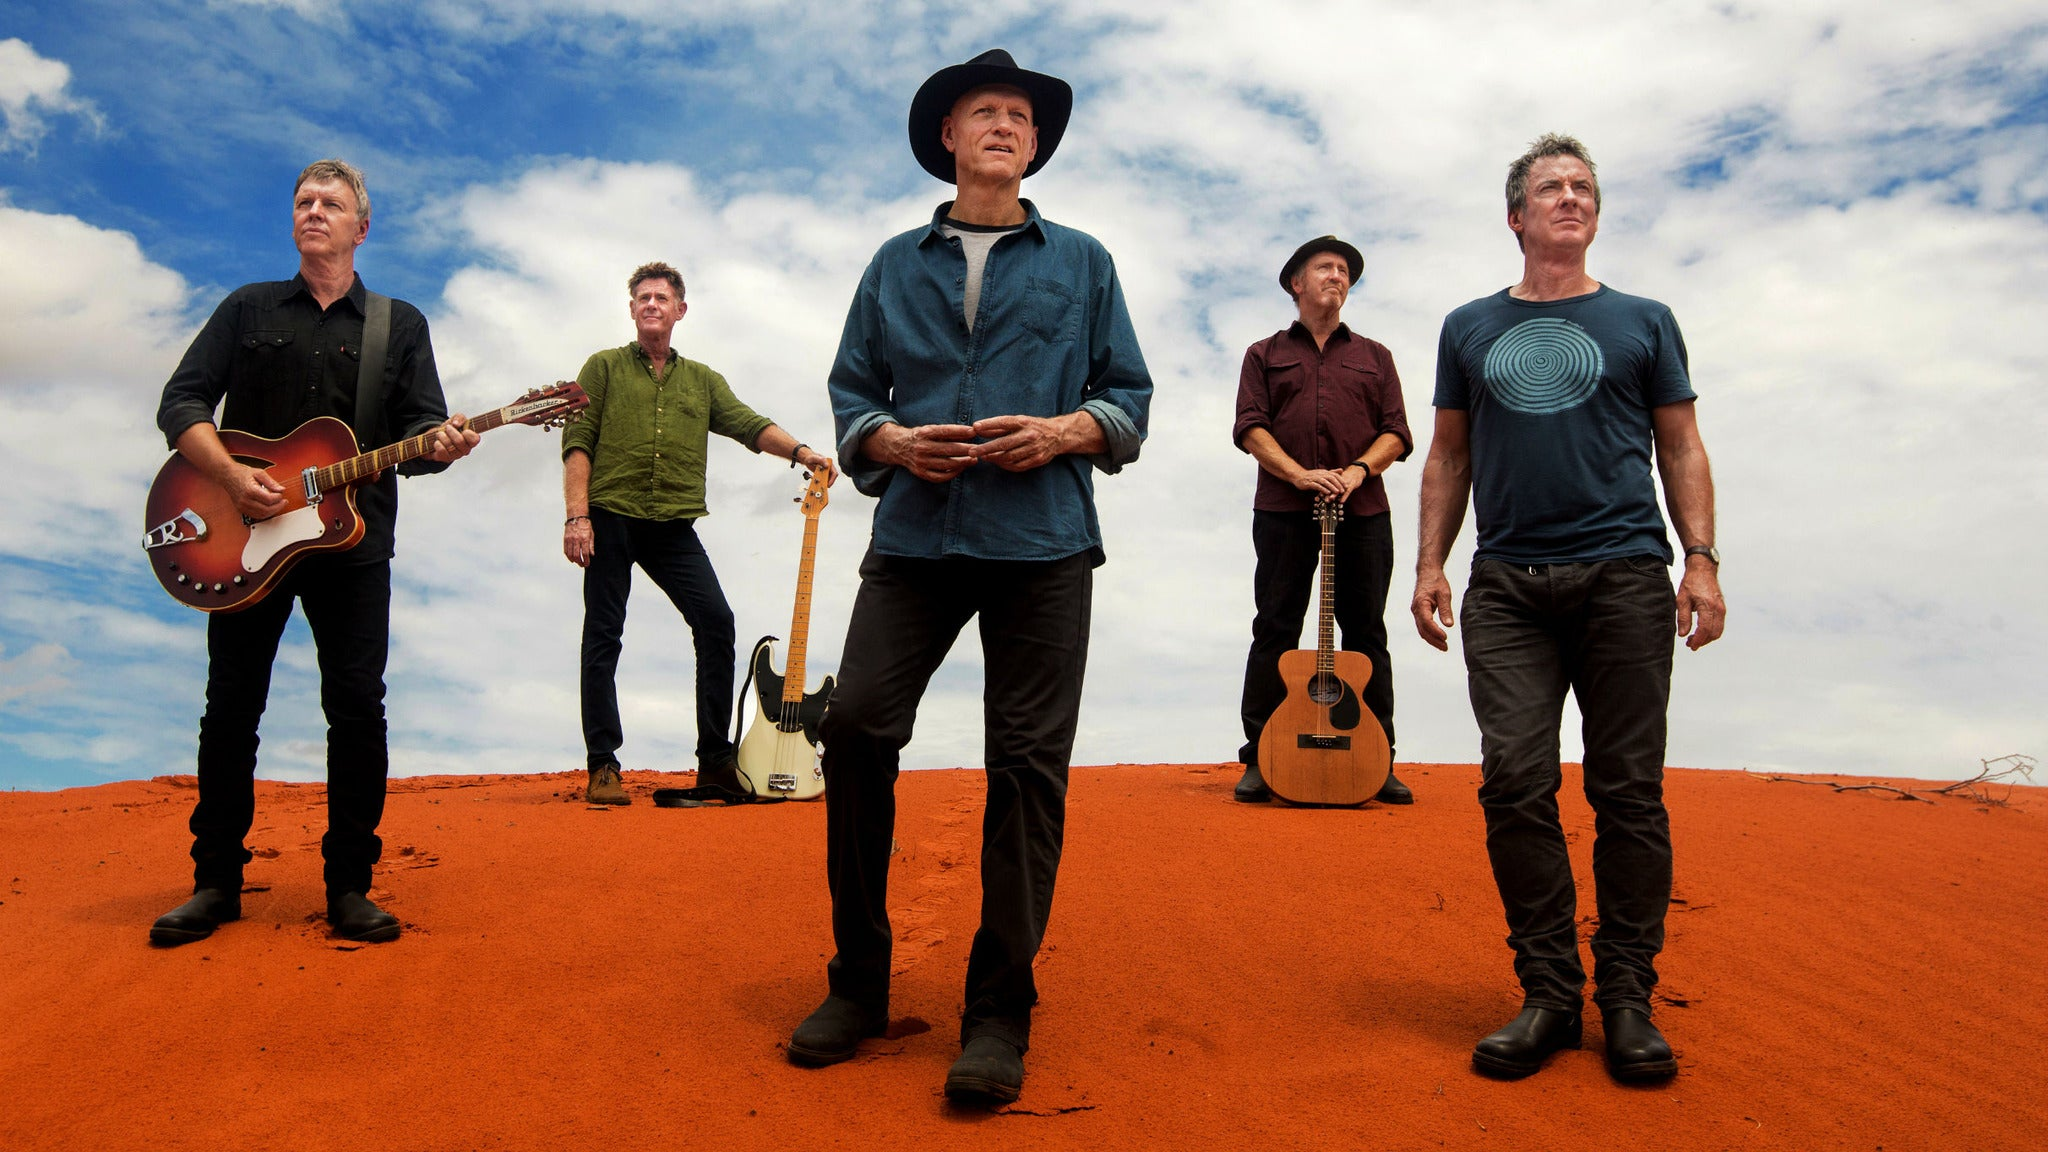 92.5 The River presents Midnight Oil - The Great Circle Tour